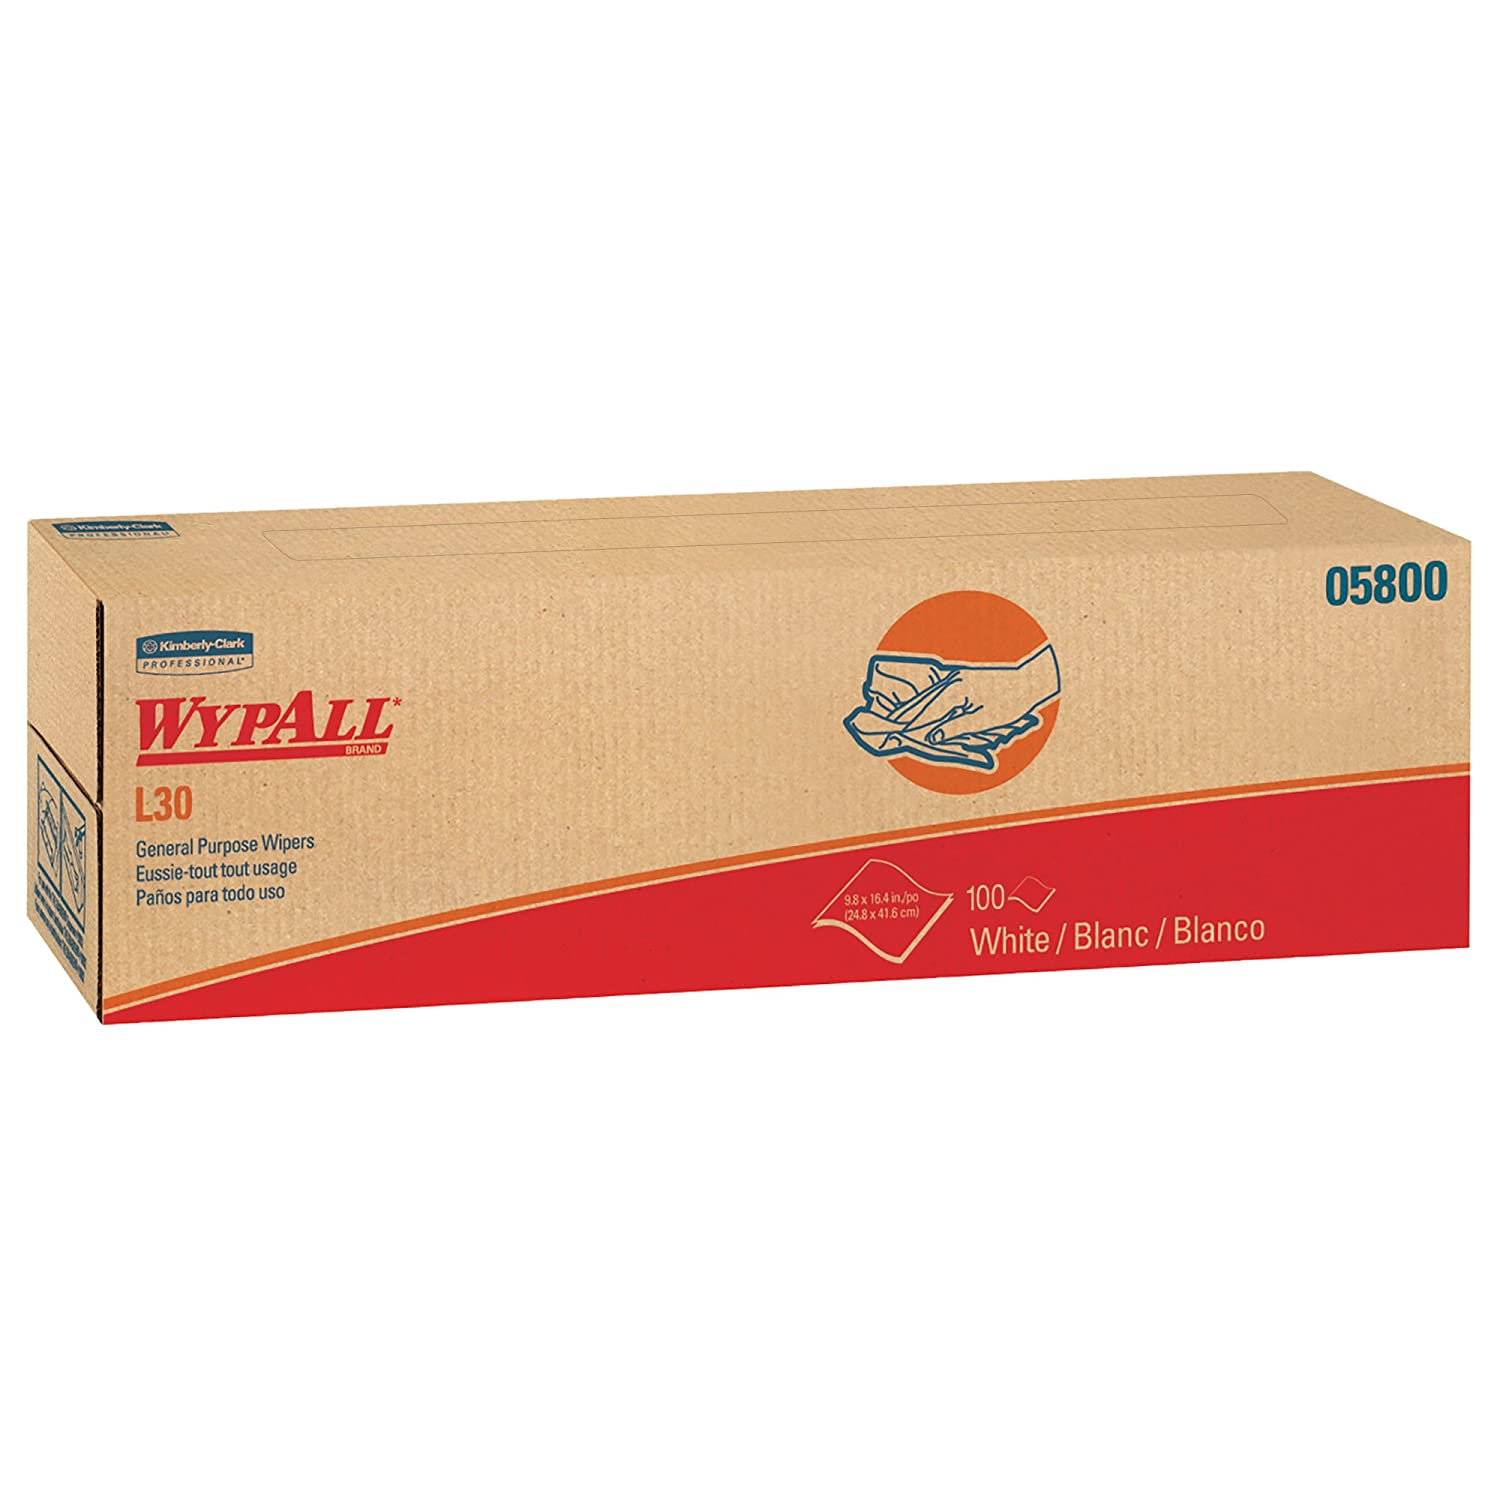 Wypall L30 DRC Towels 05800 Strong and Soft Wipes White 100 Sheets Pop Up Box 8 Boxes Case 800 Wipes Case